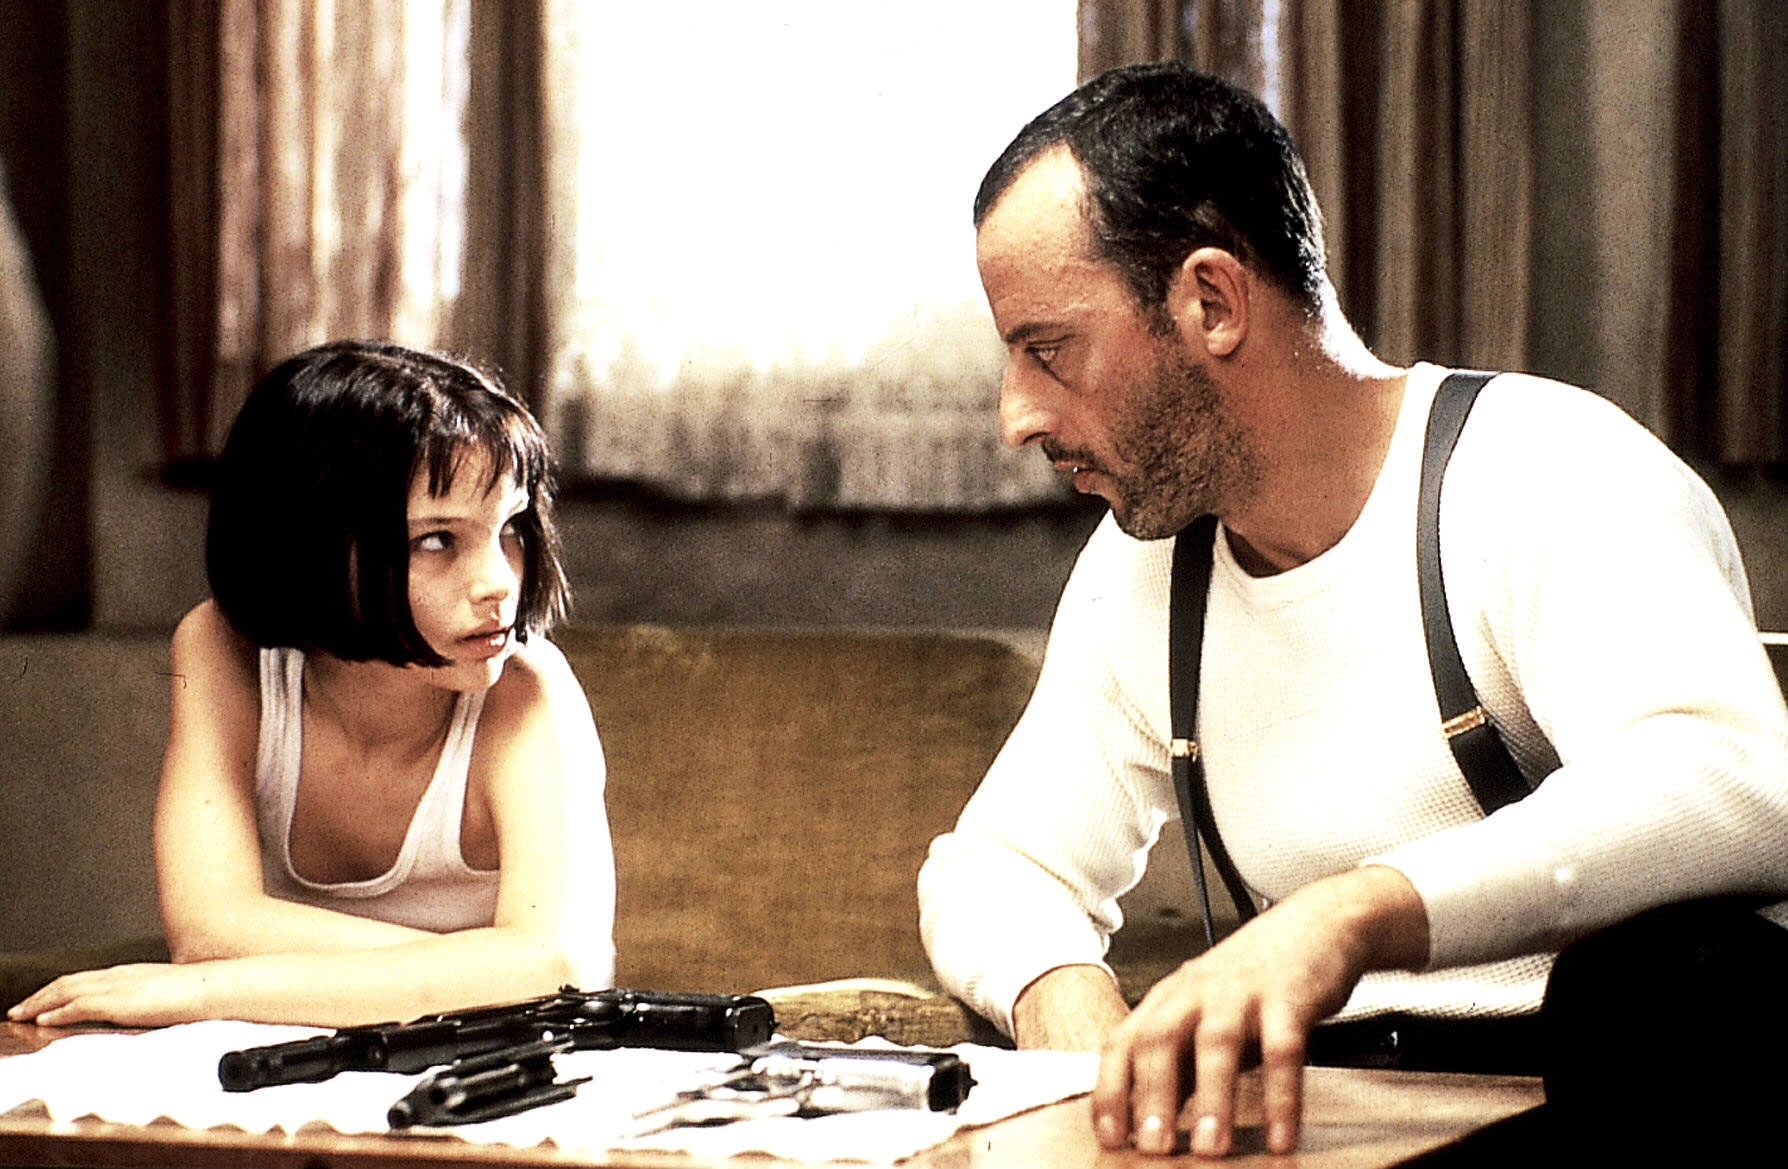 https://phi-centre.com/wp-content/uploads/2016/05/leon-stills-leon-leon-the-professional-24525341-1788-1169-1.jpg